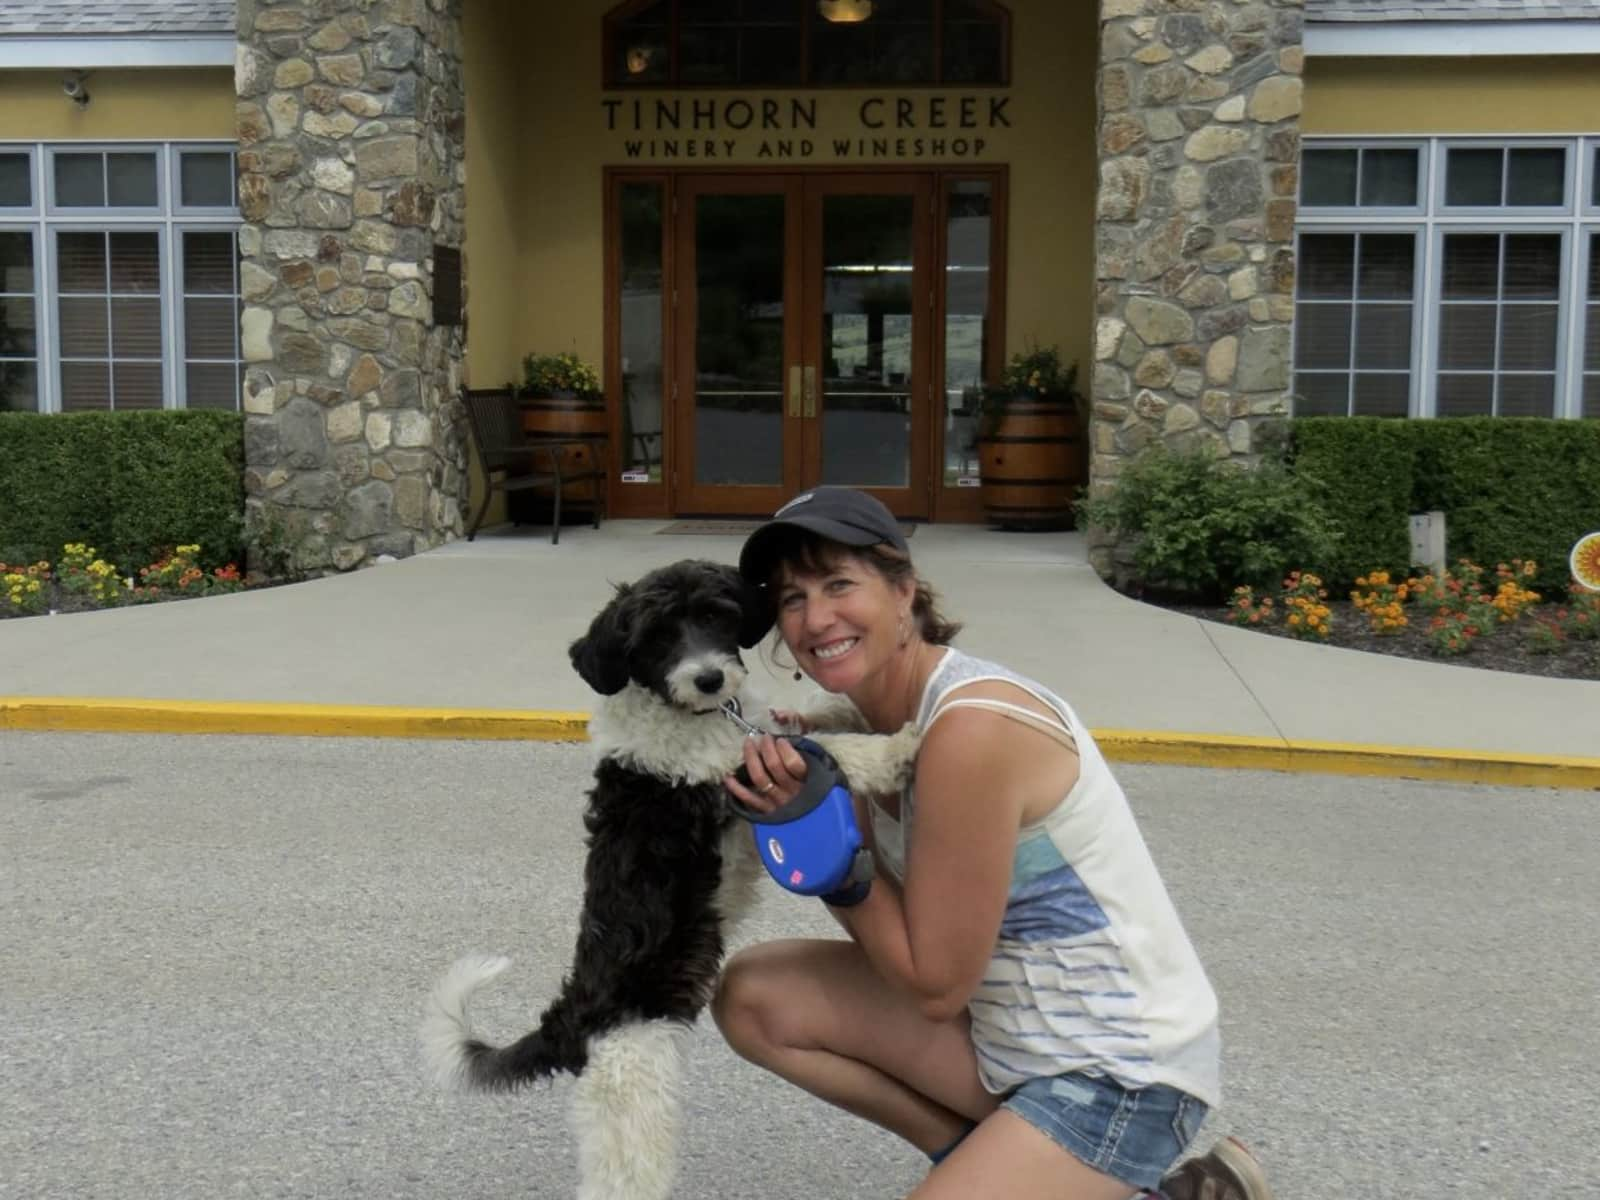 Heather & Toby from Nanoose Bay, British Columbia, Canada